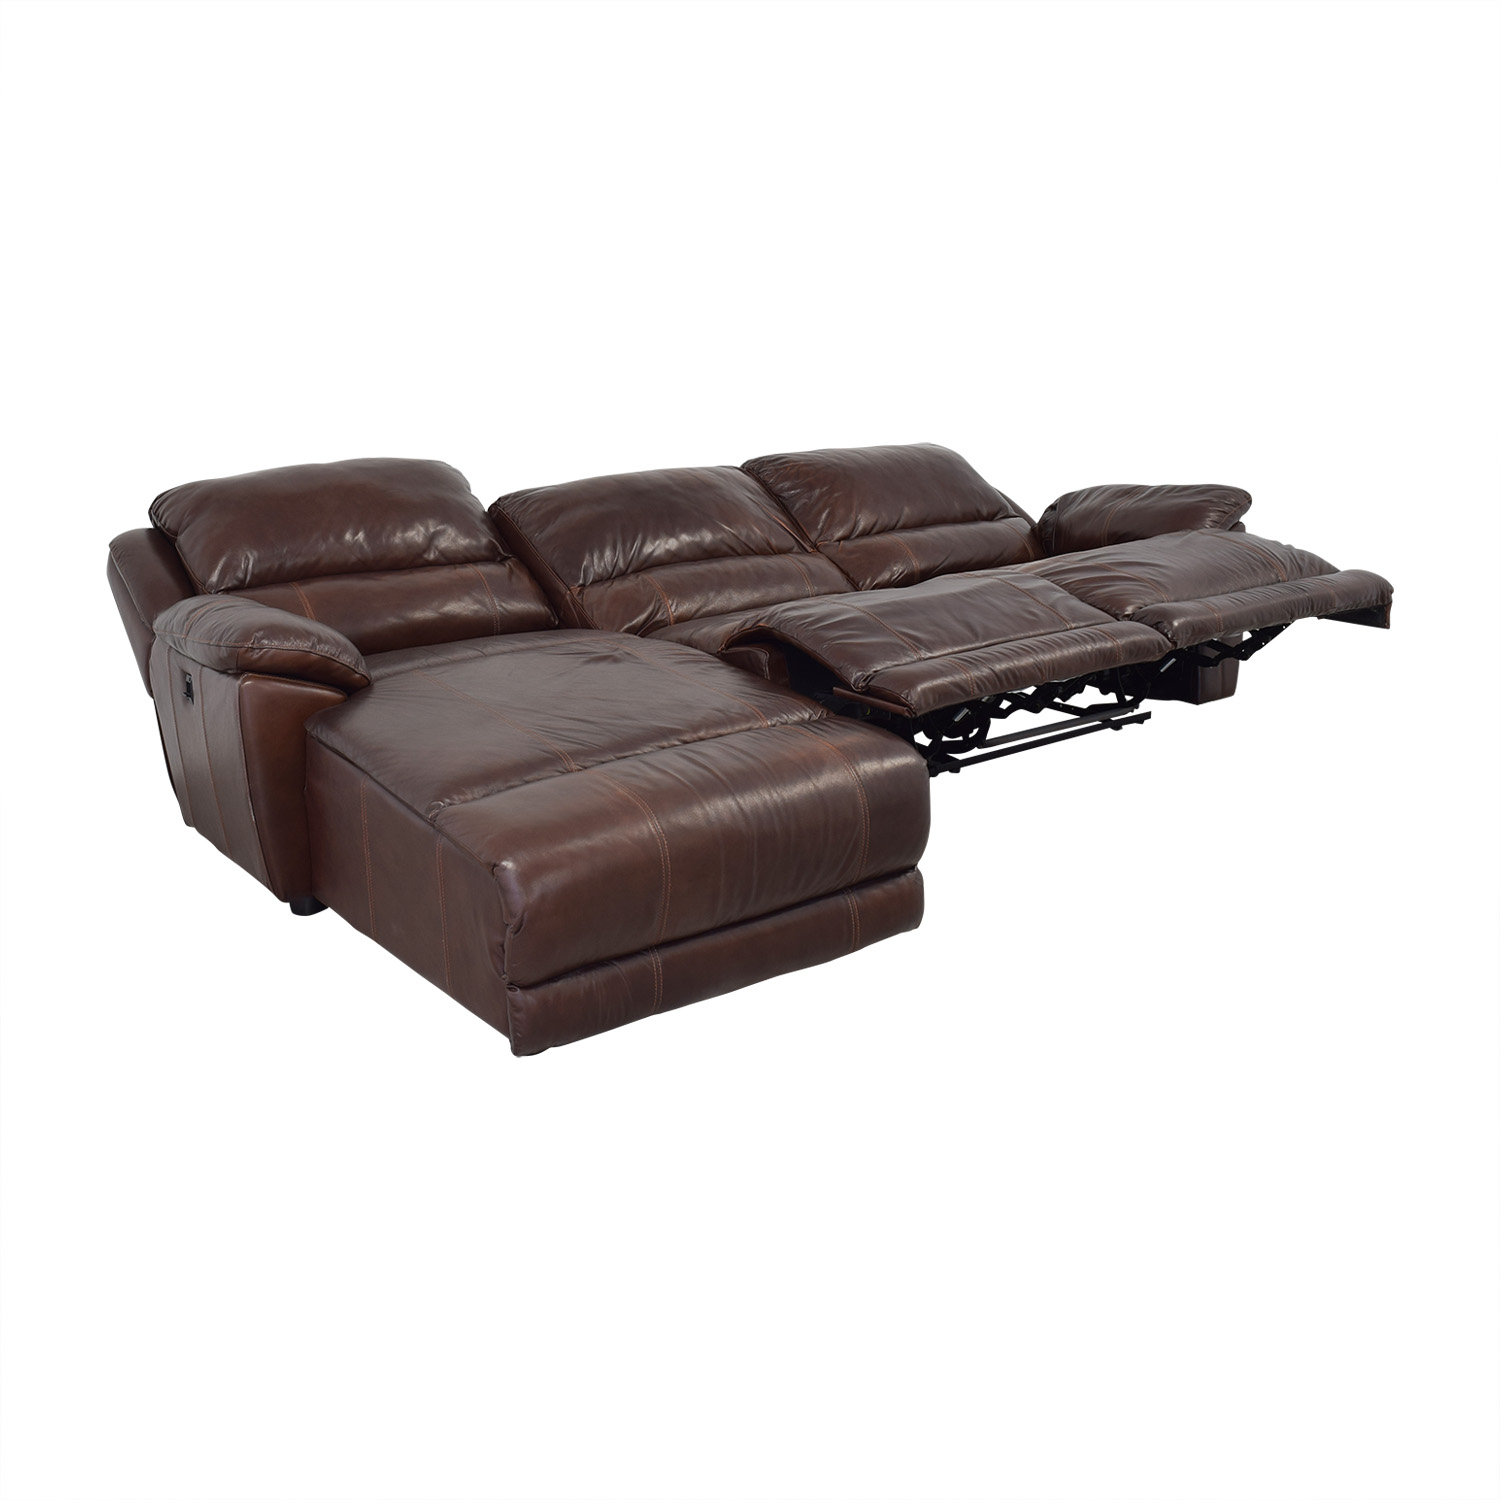 Prime 80 Off Macys Macys Leather Sectional Sofas Machost Co Dining Chair Design Ideas Machostcouk